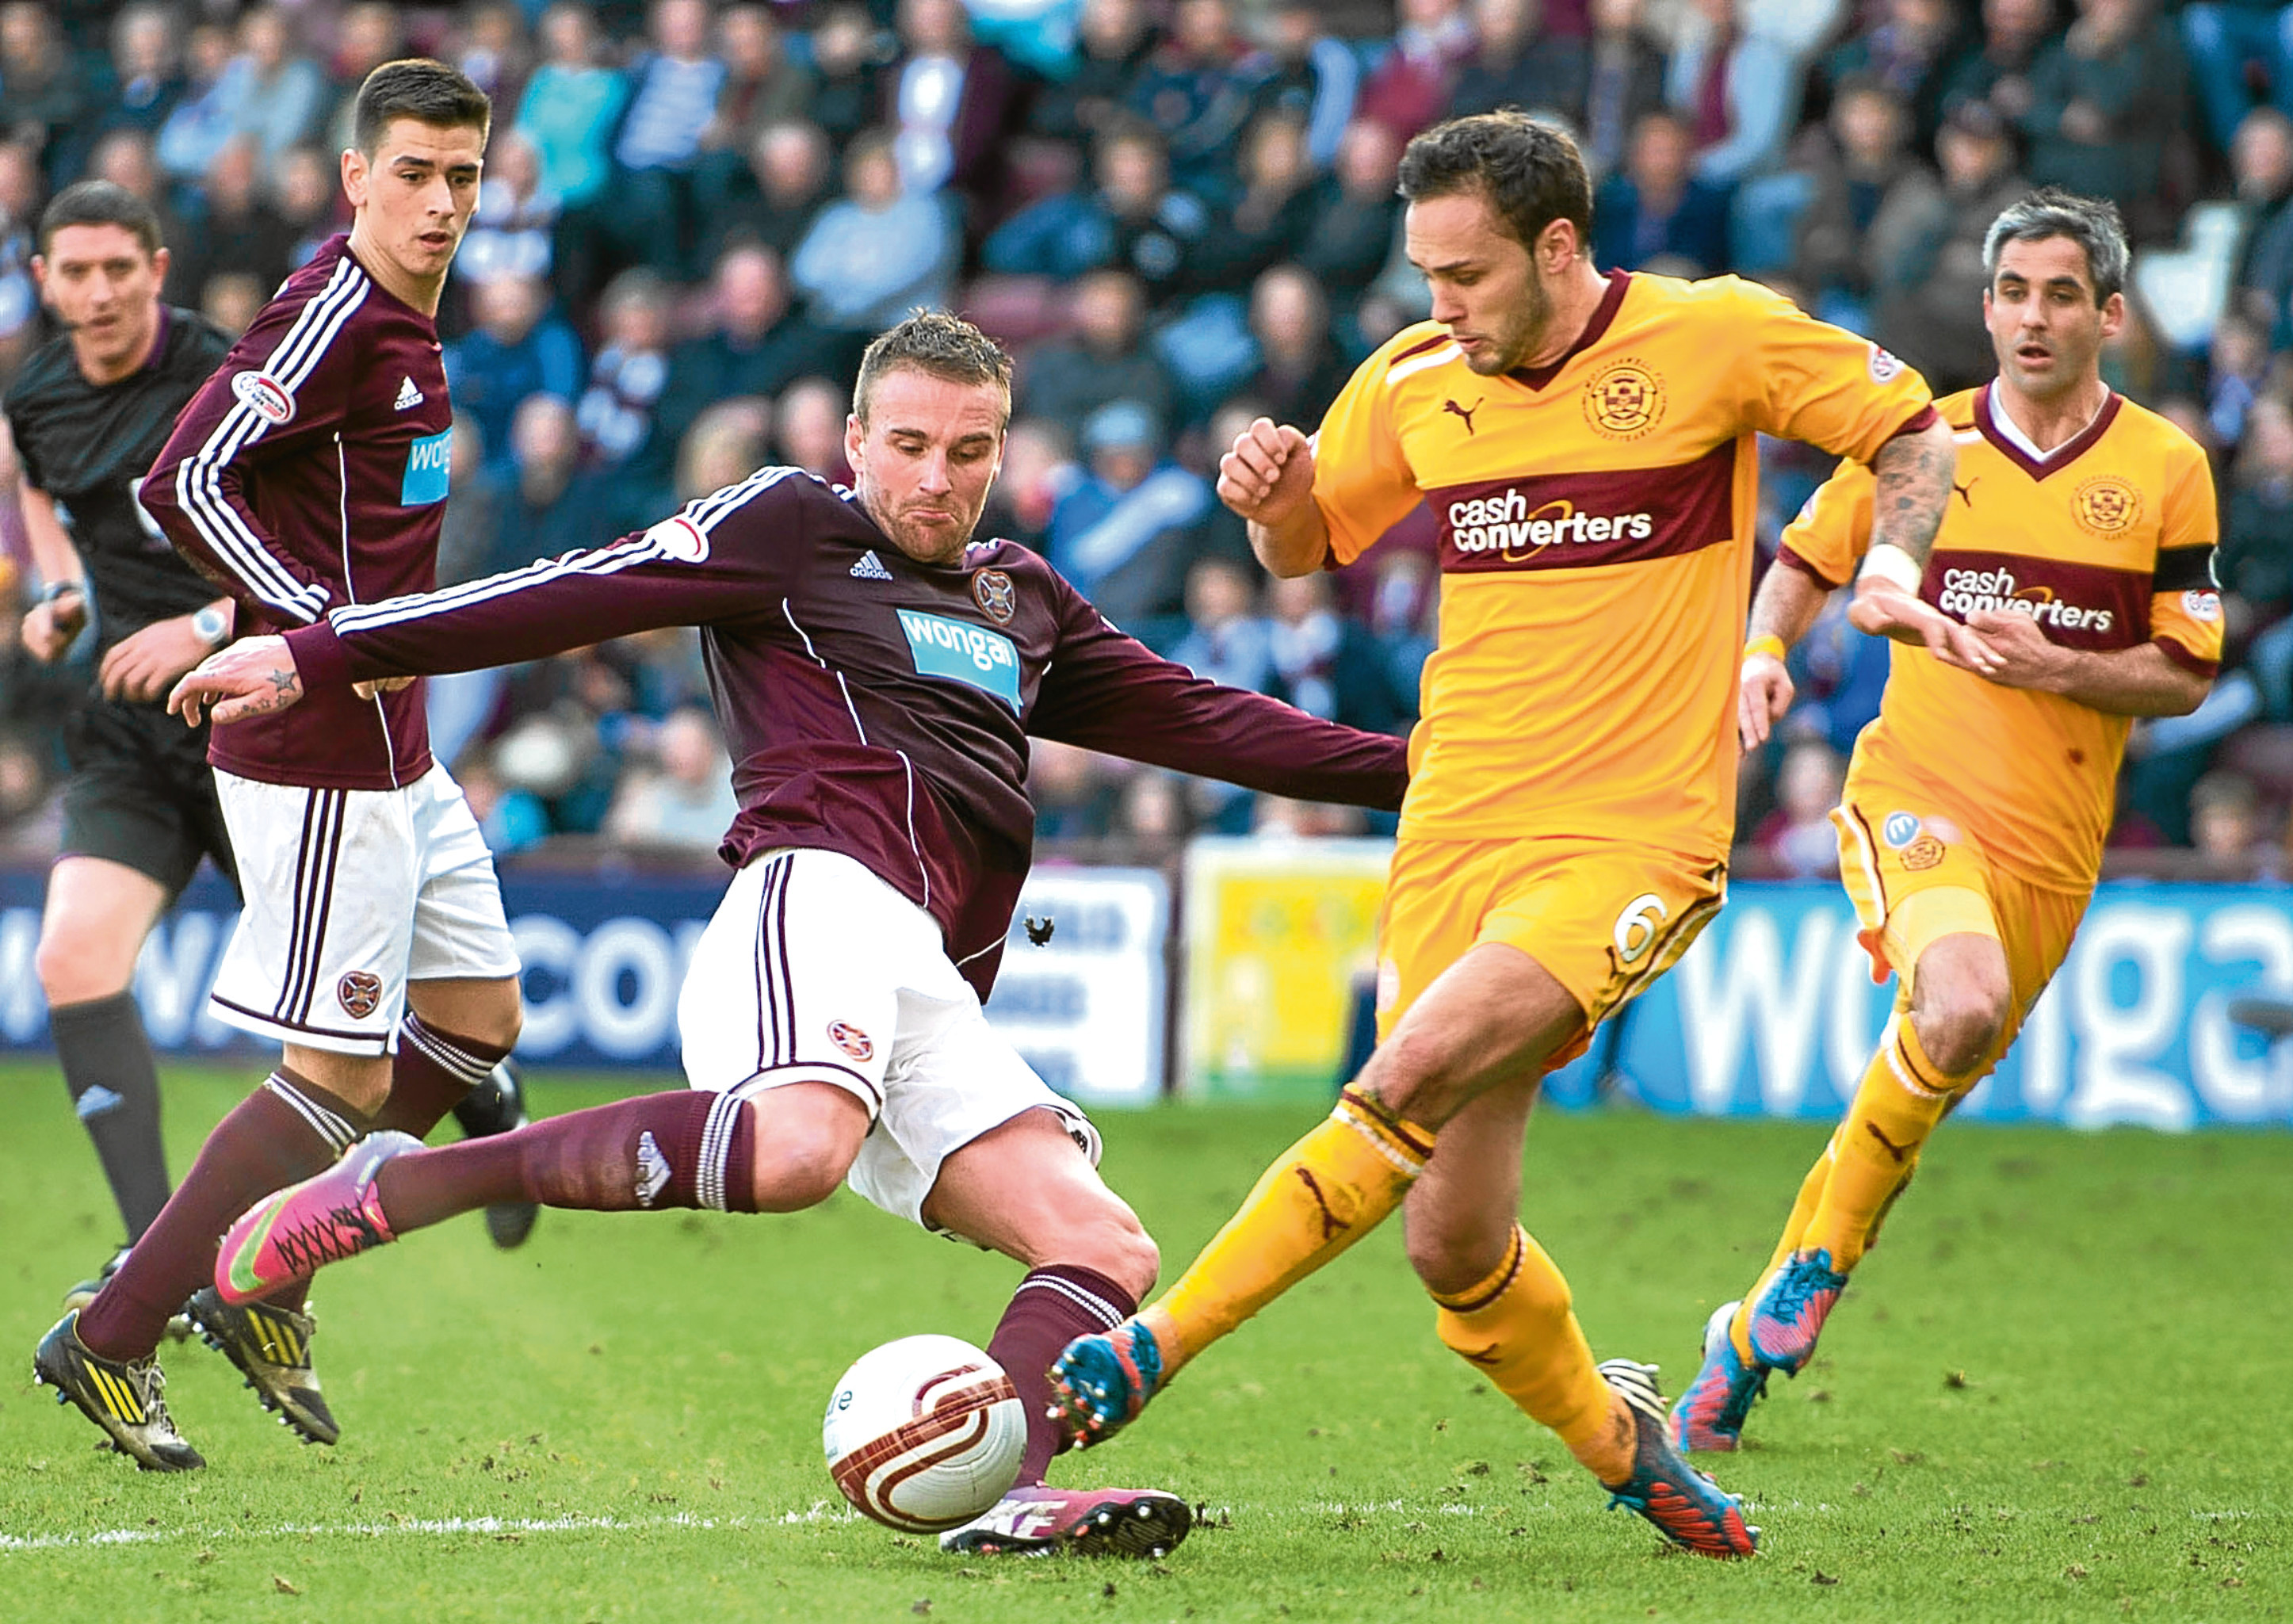 Tom Hateley, seen here while playing for Motherwell against Hearts, is still on the radar of Dundee manager Paul Hartley.